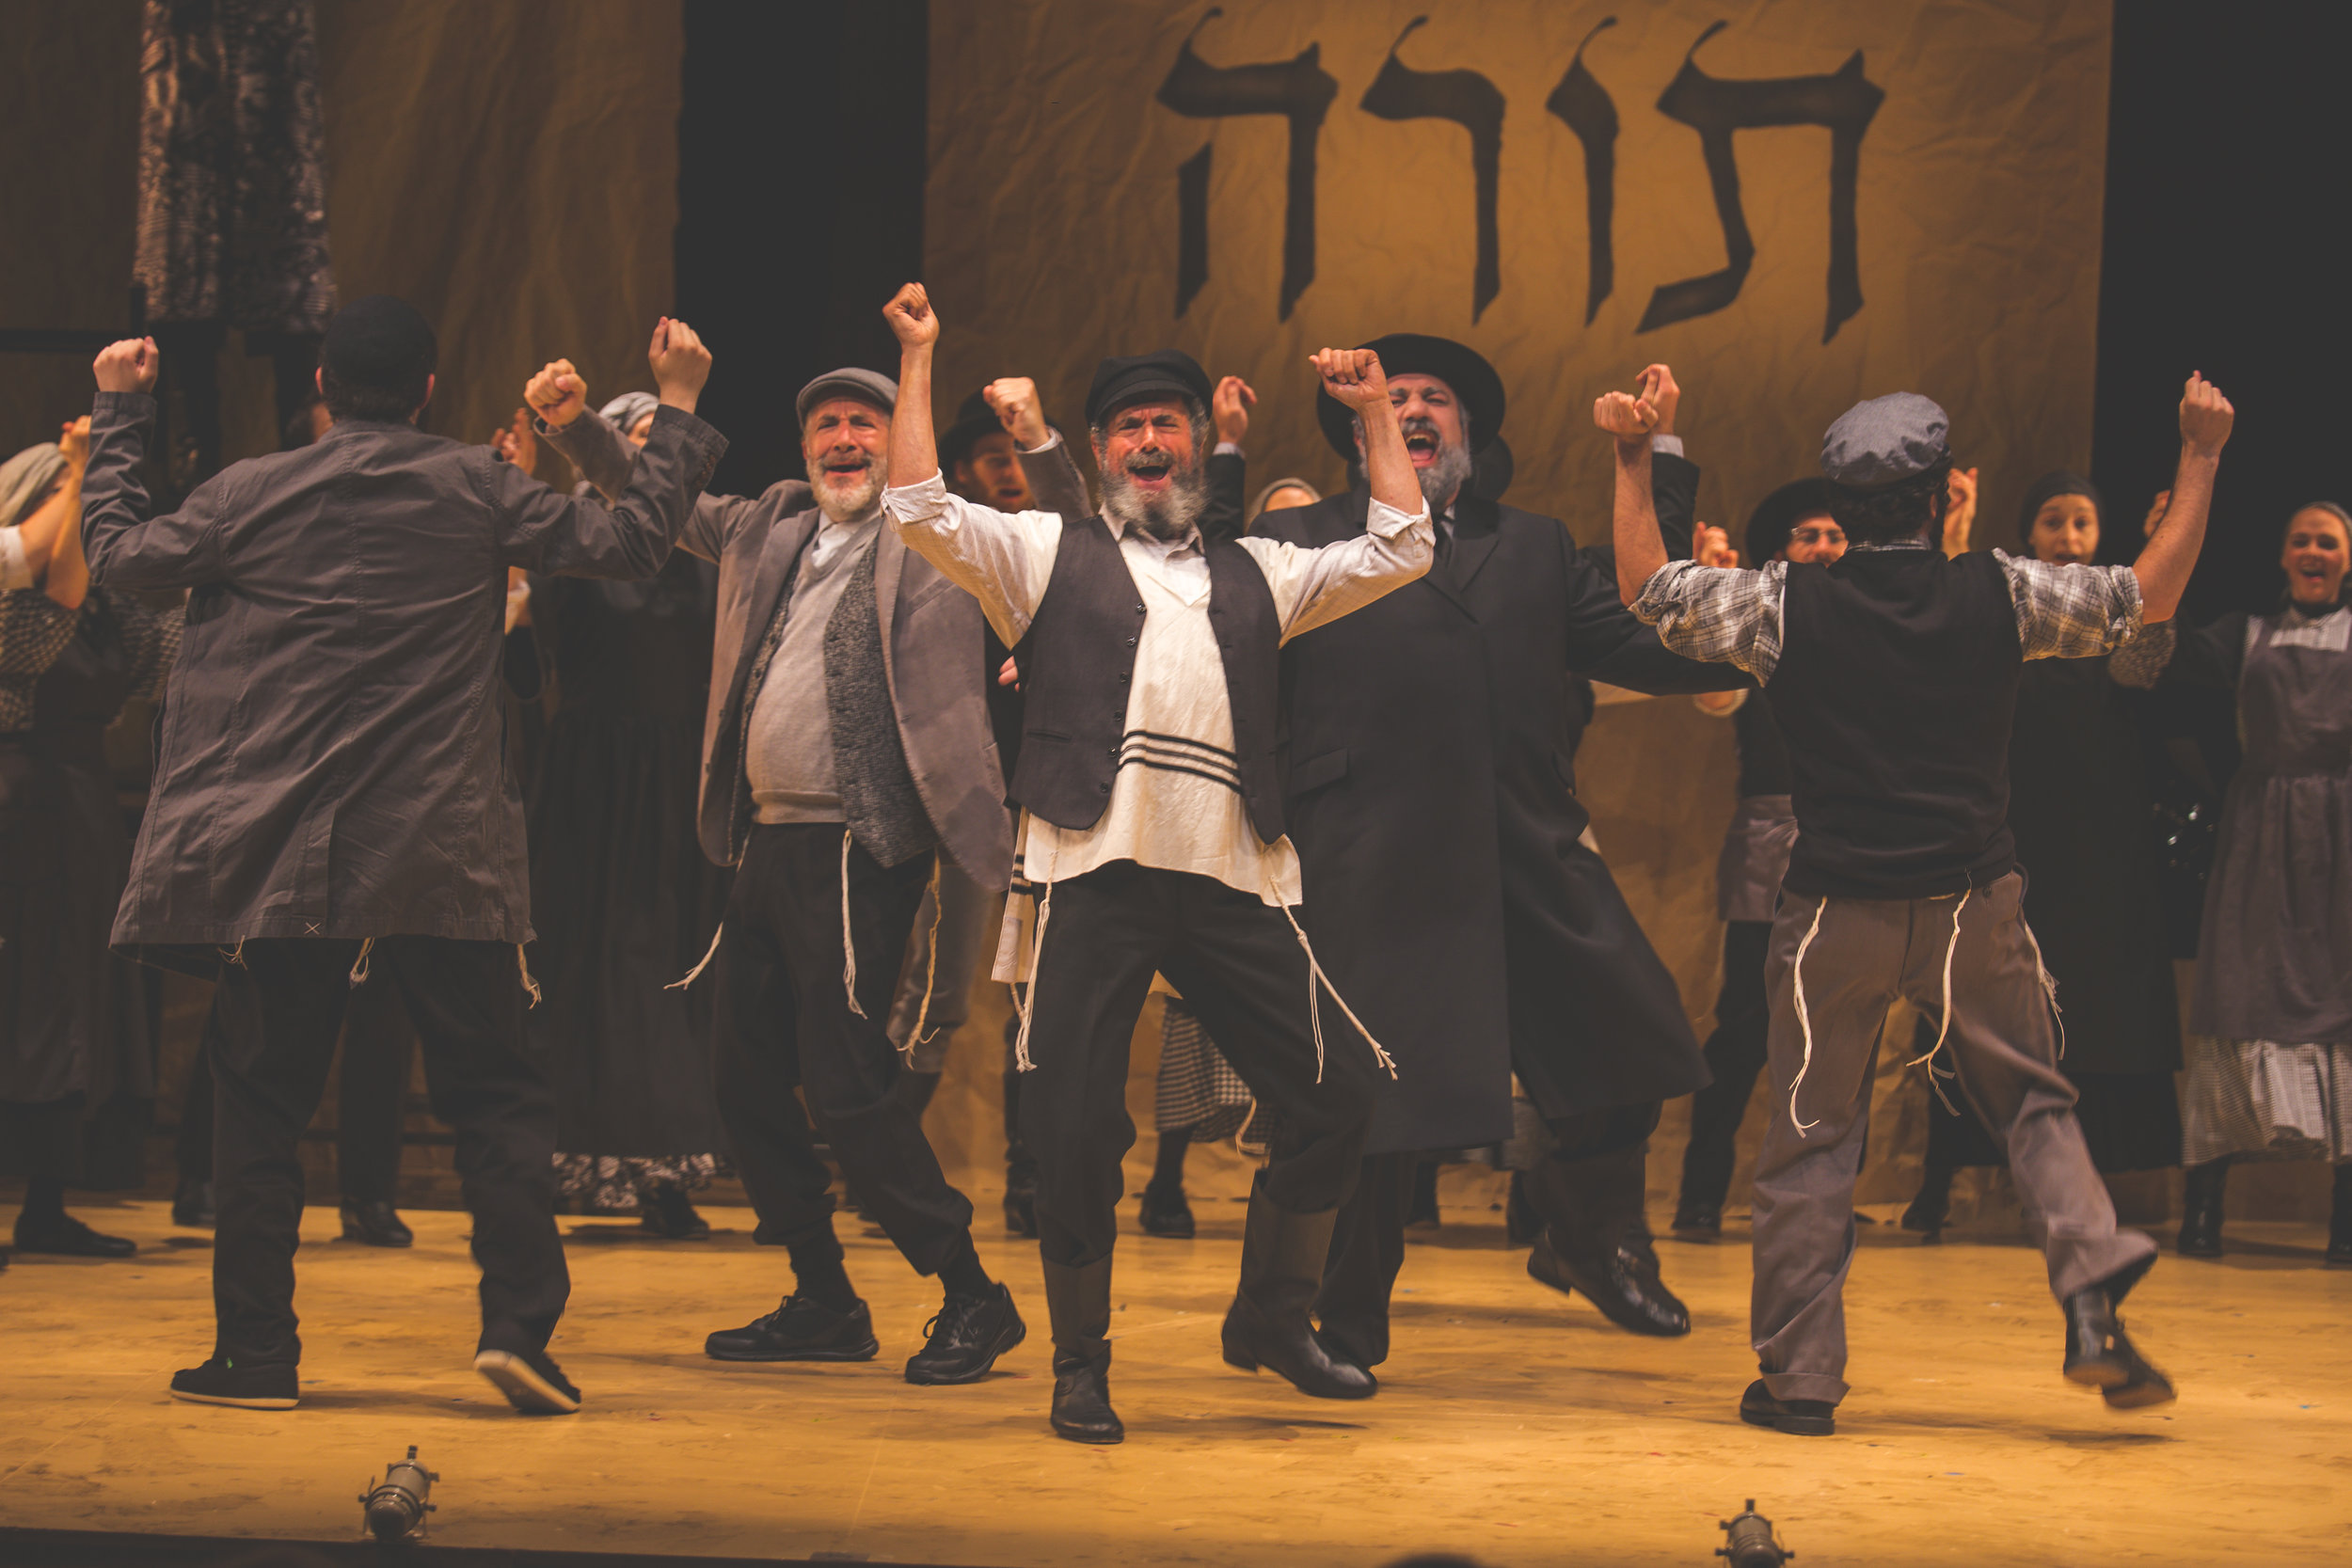 Steven Skybell (Tevye) and Ensemble. Photo credit: Victor Nechay / ProperPix